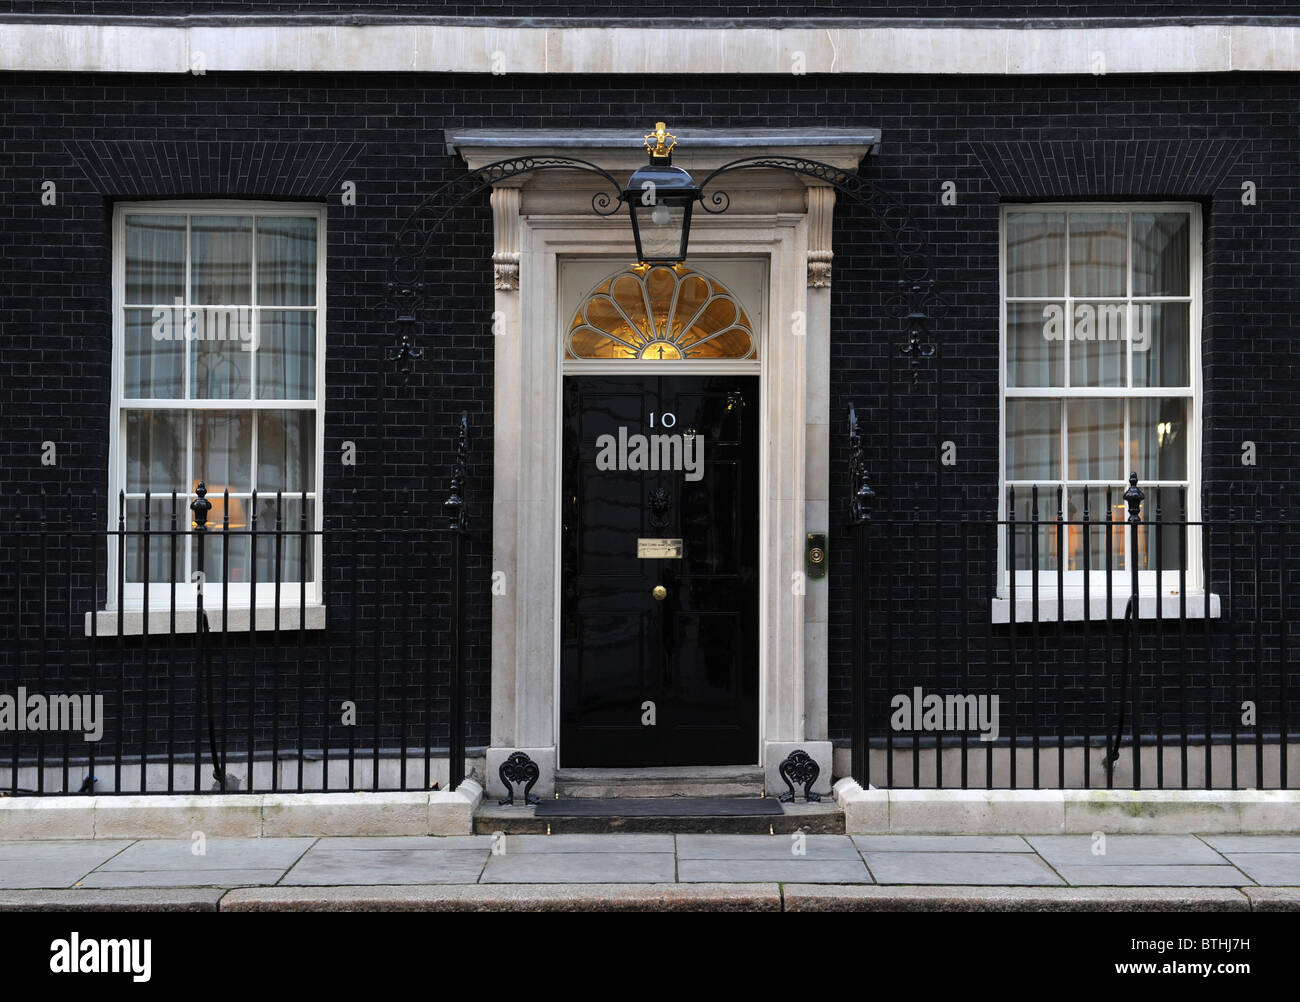 Exterior of 10 Downing Street , London  Home of the Prime Minister of Great Britain - Stock Image